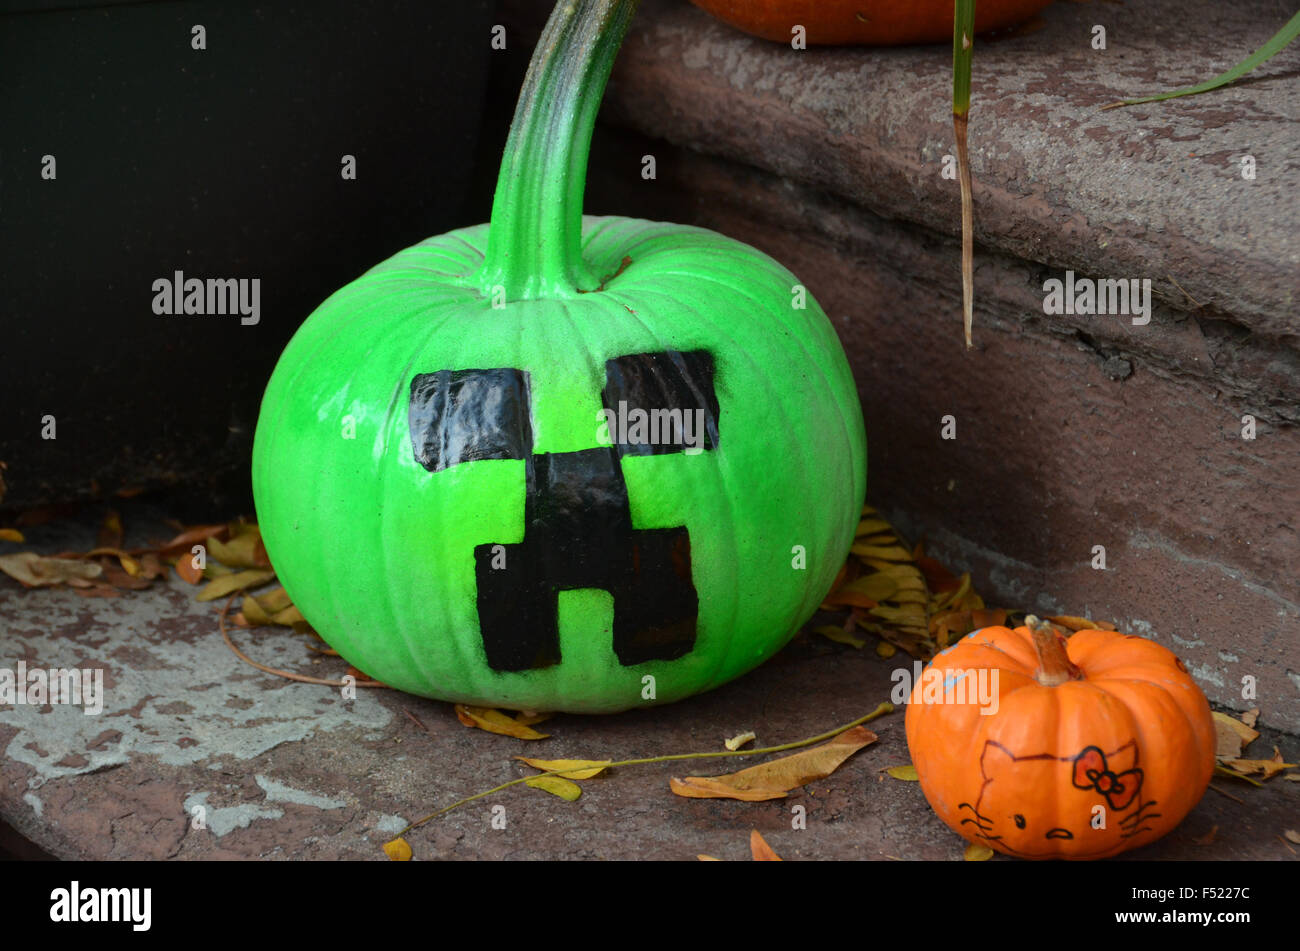 halloween decorations brooklyn park slope new york pumpkins for sale outside shop - Stock Image